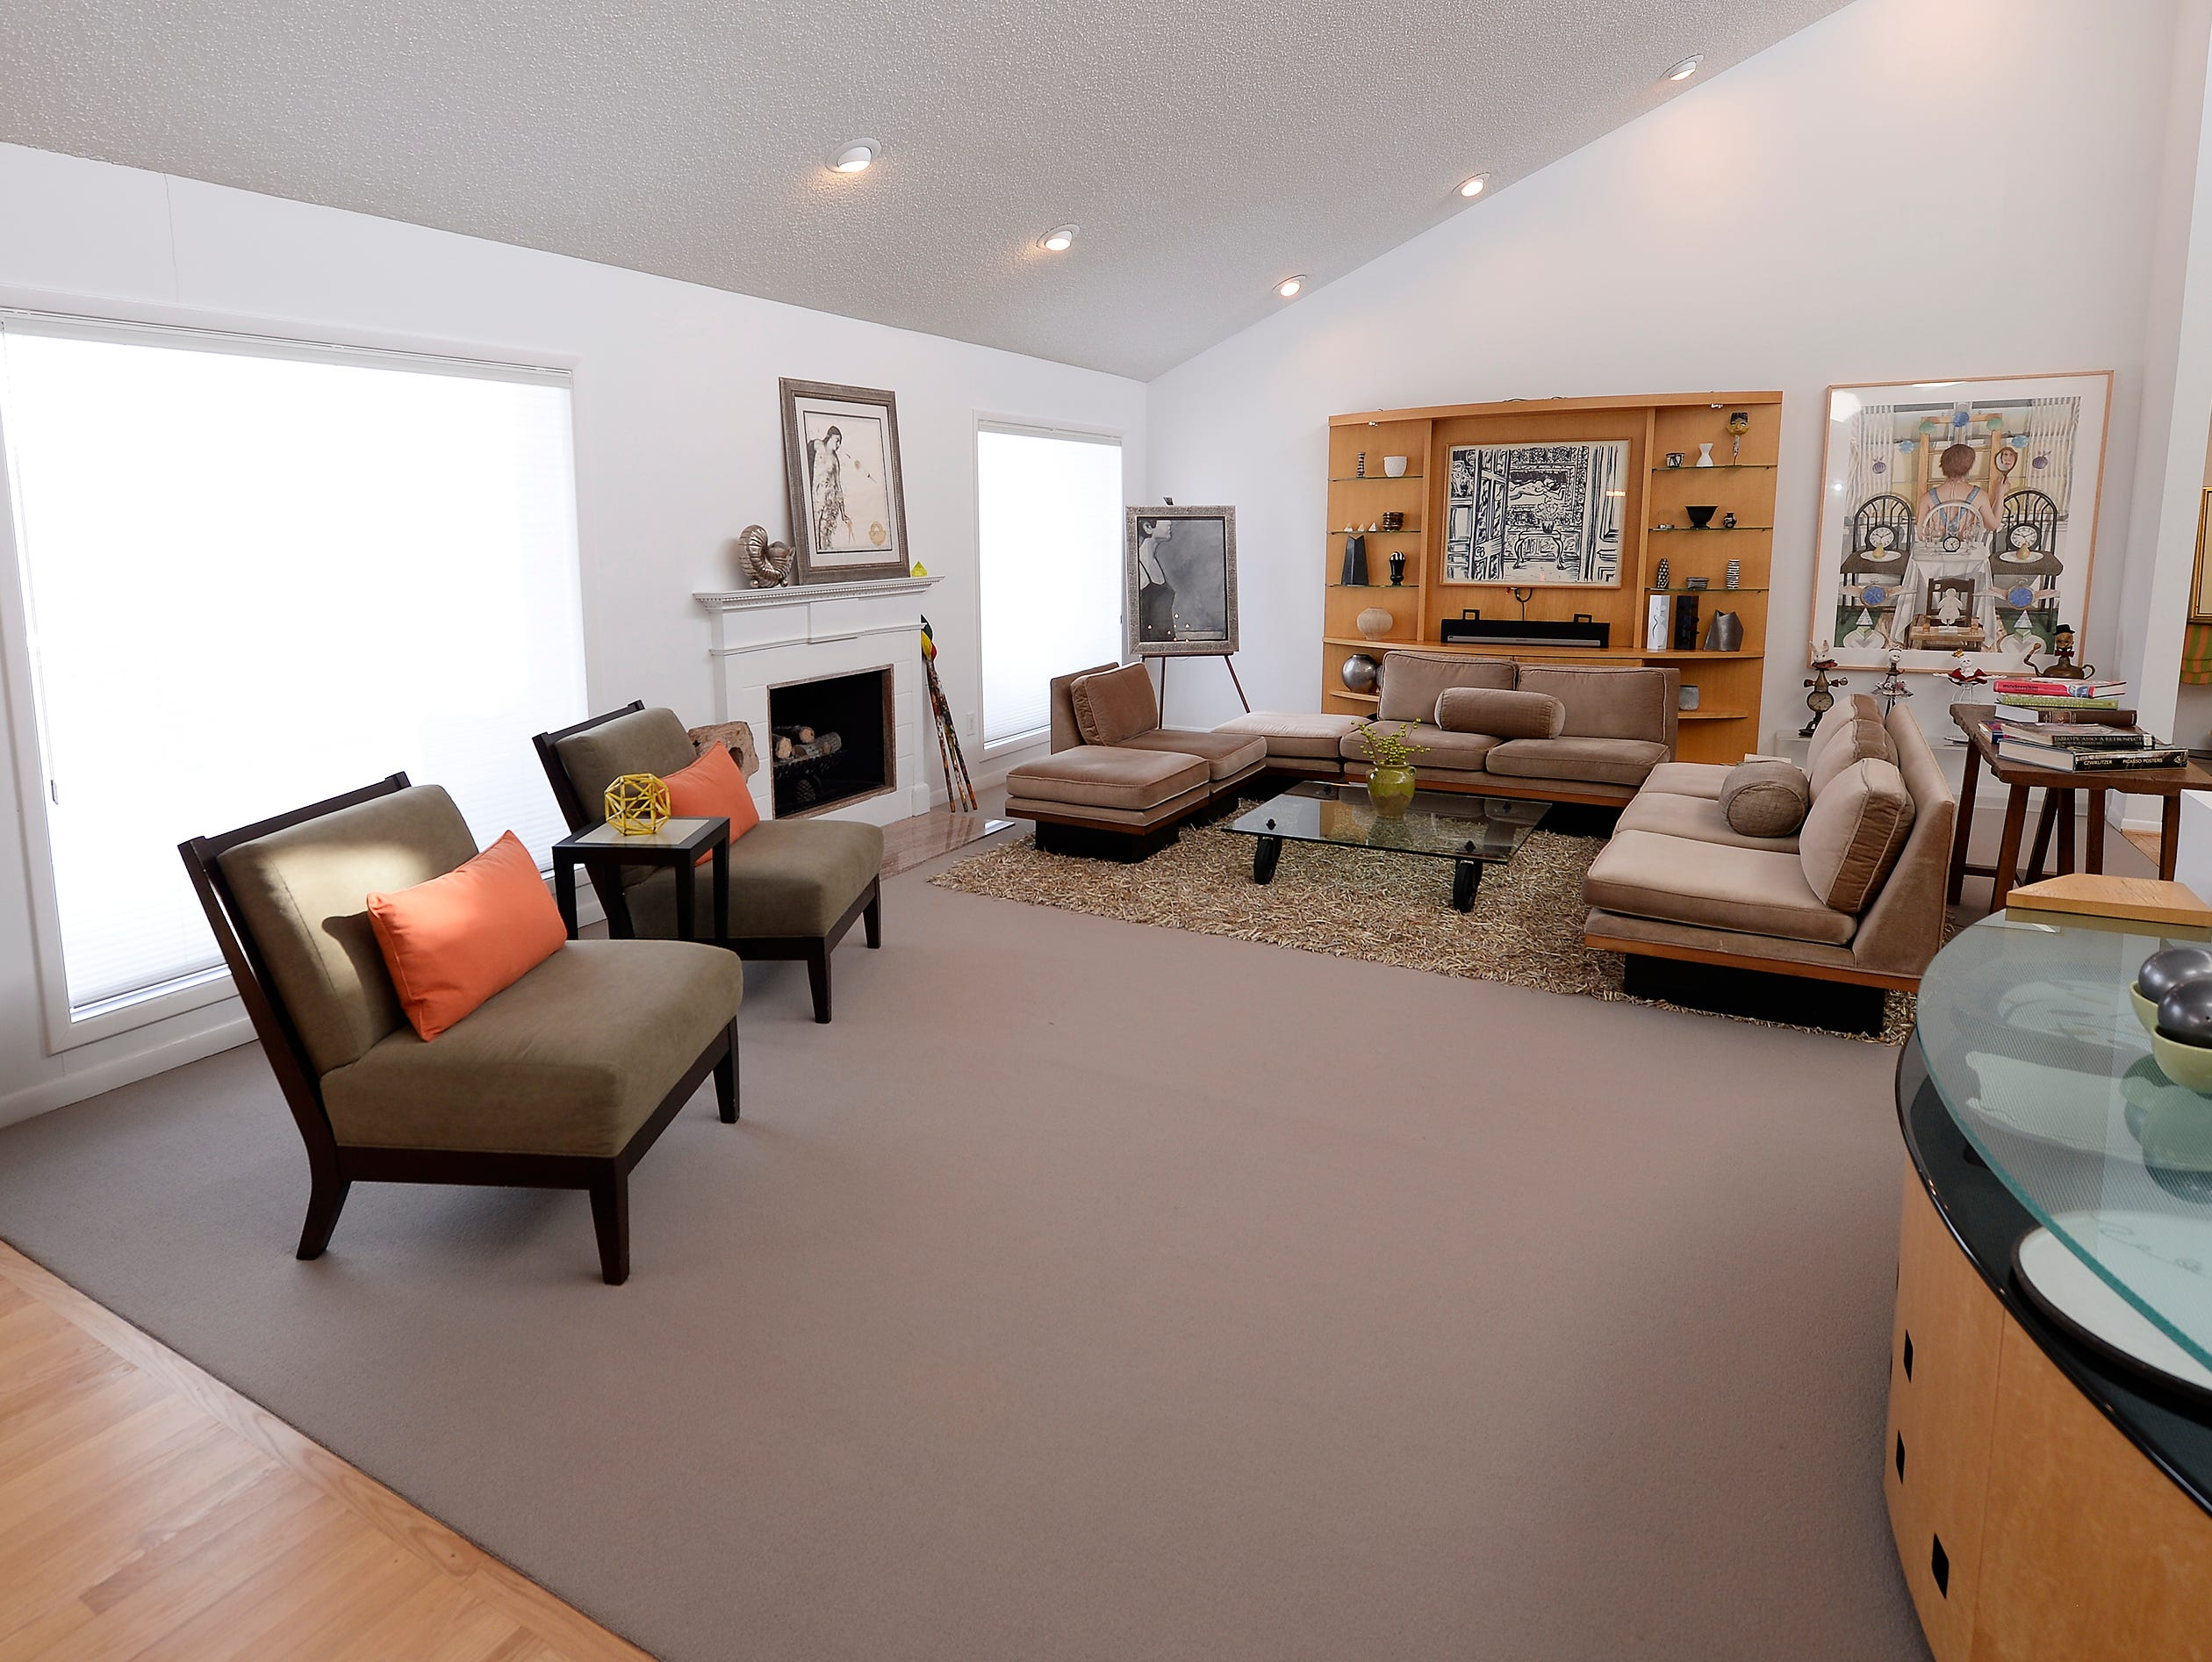 Overall wide view of the living room.